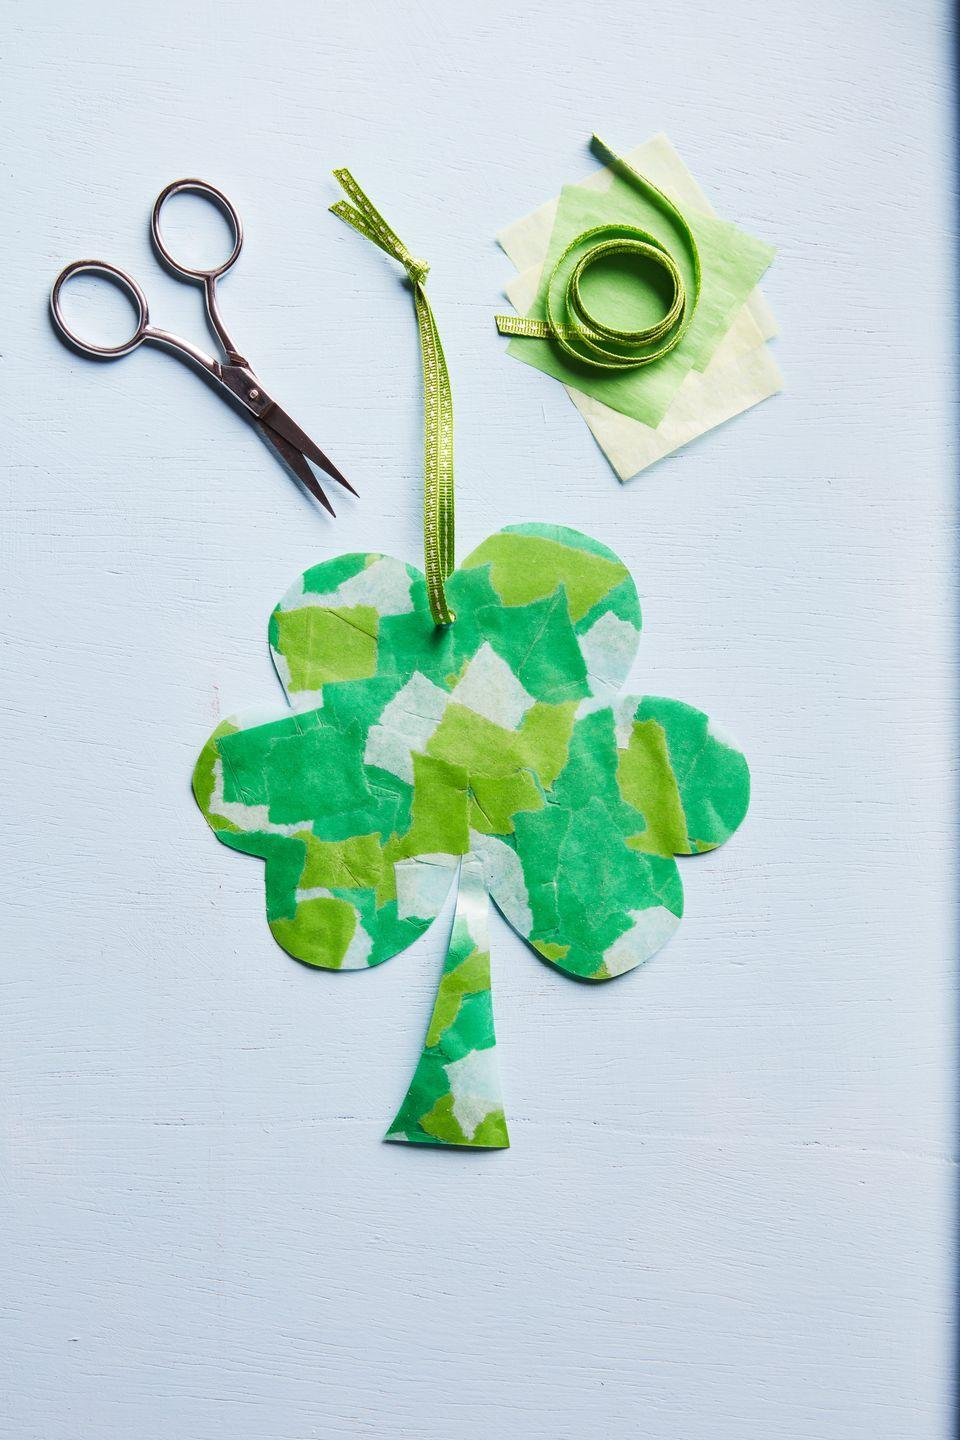 """<p>This sweet four-leaf clover ornament will look equally cute hanging from a magnet on the fridge or on the front door. Make it as small or large as desired.</p><p><strong>To make:</strong> Tear light green, dark green, and white tissue paper into small pieces. Lay pieces in between self-sealing laminating pouches; seal. Cut out a four-leaf clover shape. Punch a small hole in the top of the clover with a small hole-punch. Thread ribbon through the hole and hang.</p><p><a class=""""link rapid-noclick-resp"""" href=""""https://www.amazon.com/Scotch-Self-Sealing-Laminating-LS854-25G-WM-LS854WC/dp/B00006HZ5F/ref=sr_1_3?tag=syn-yahoo-20&ascsubtag=%5Bartid%7C10050.g.4035%5Bsrc%7Cyahoo-us"""" rel=""""nofollow noopener"""" target=""""_blank"""" data-ylk=""""slk:SHOP LAMINATING SHEETS"""">SHOP LAMINATING SHEETS</a><br> </p>"""